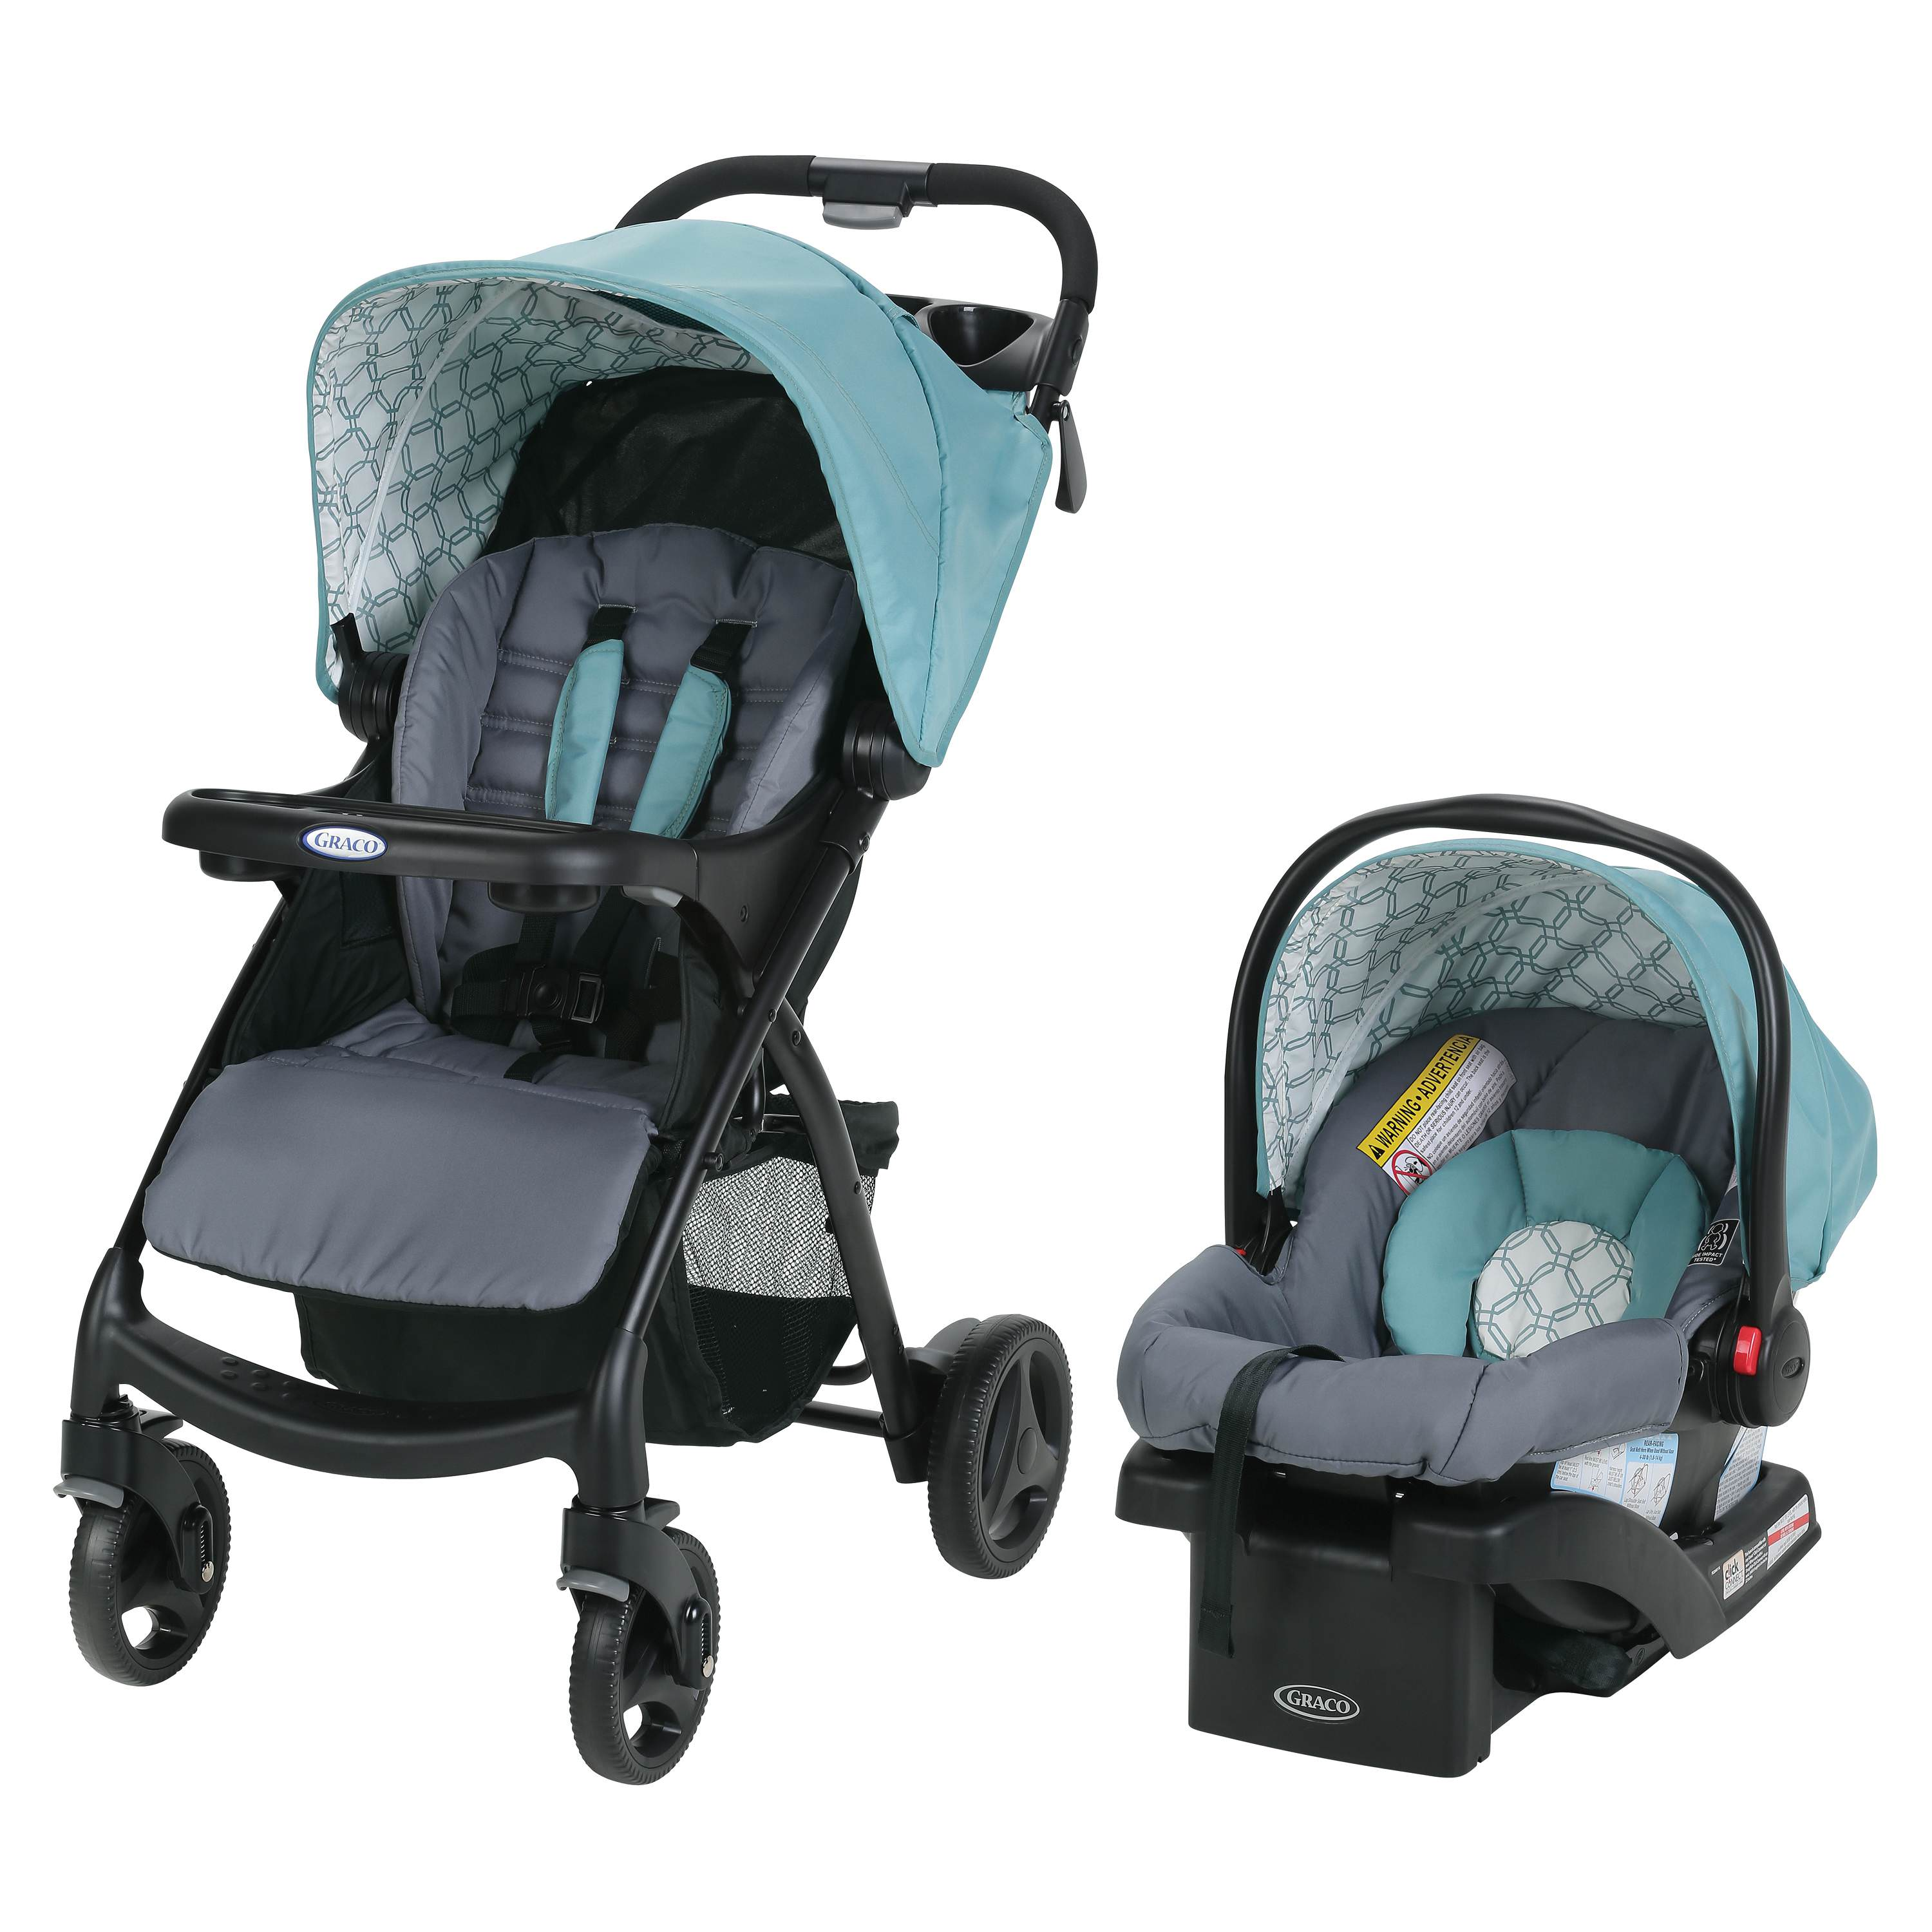 Graco Verb Click Connect Travel System with SnugRide 30 Infant Car Seat, Azalea by Graco